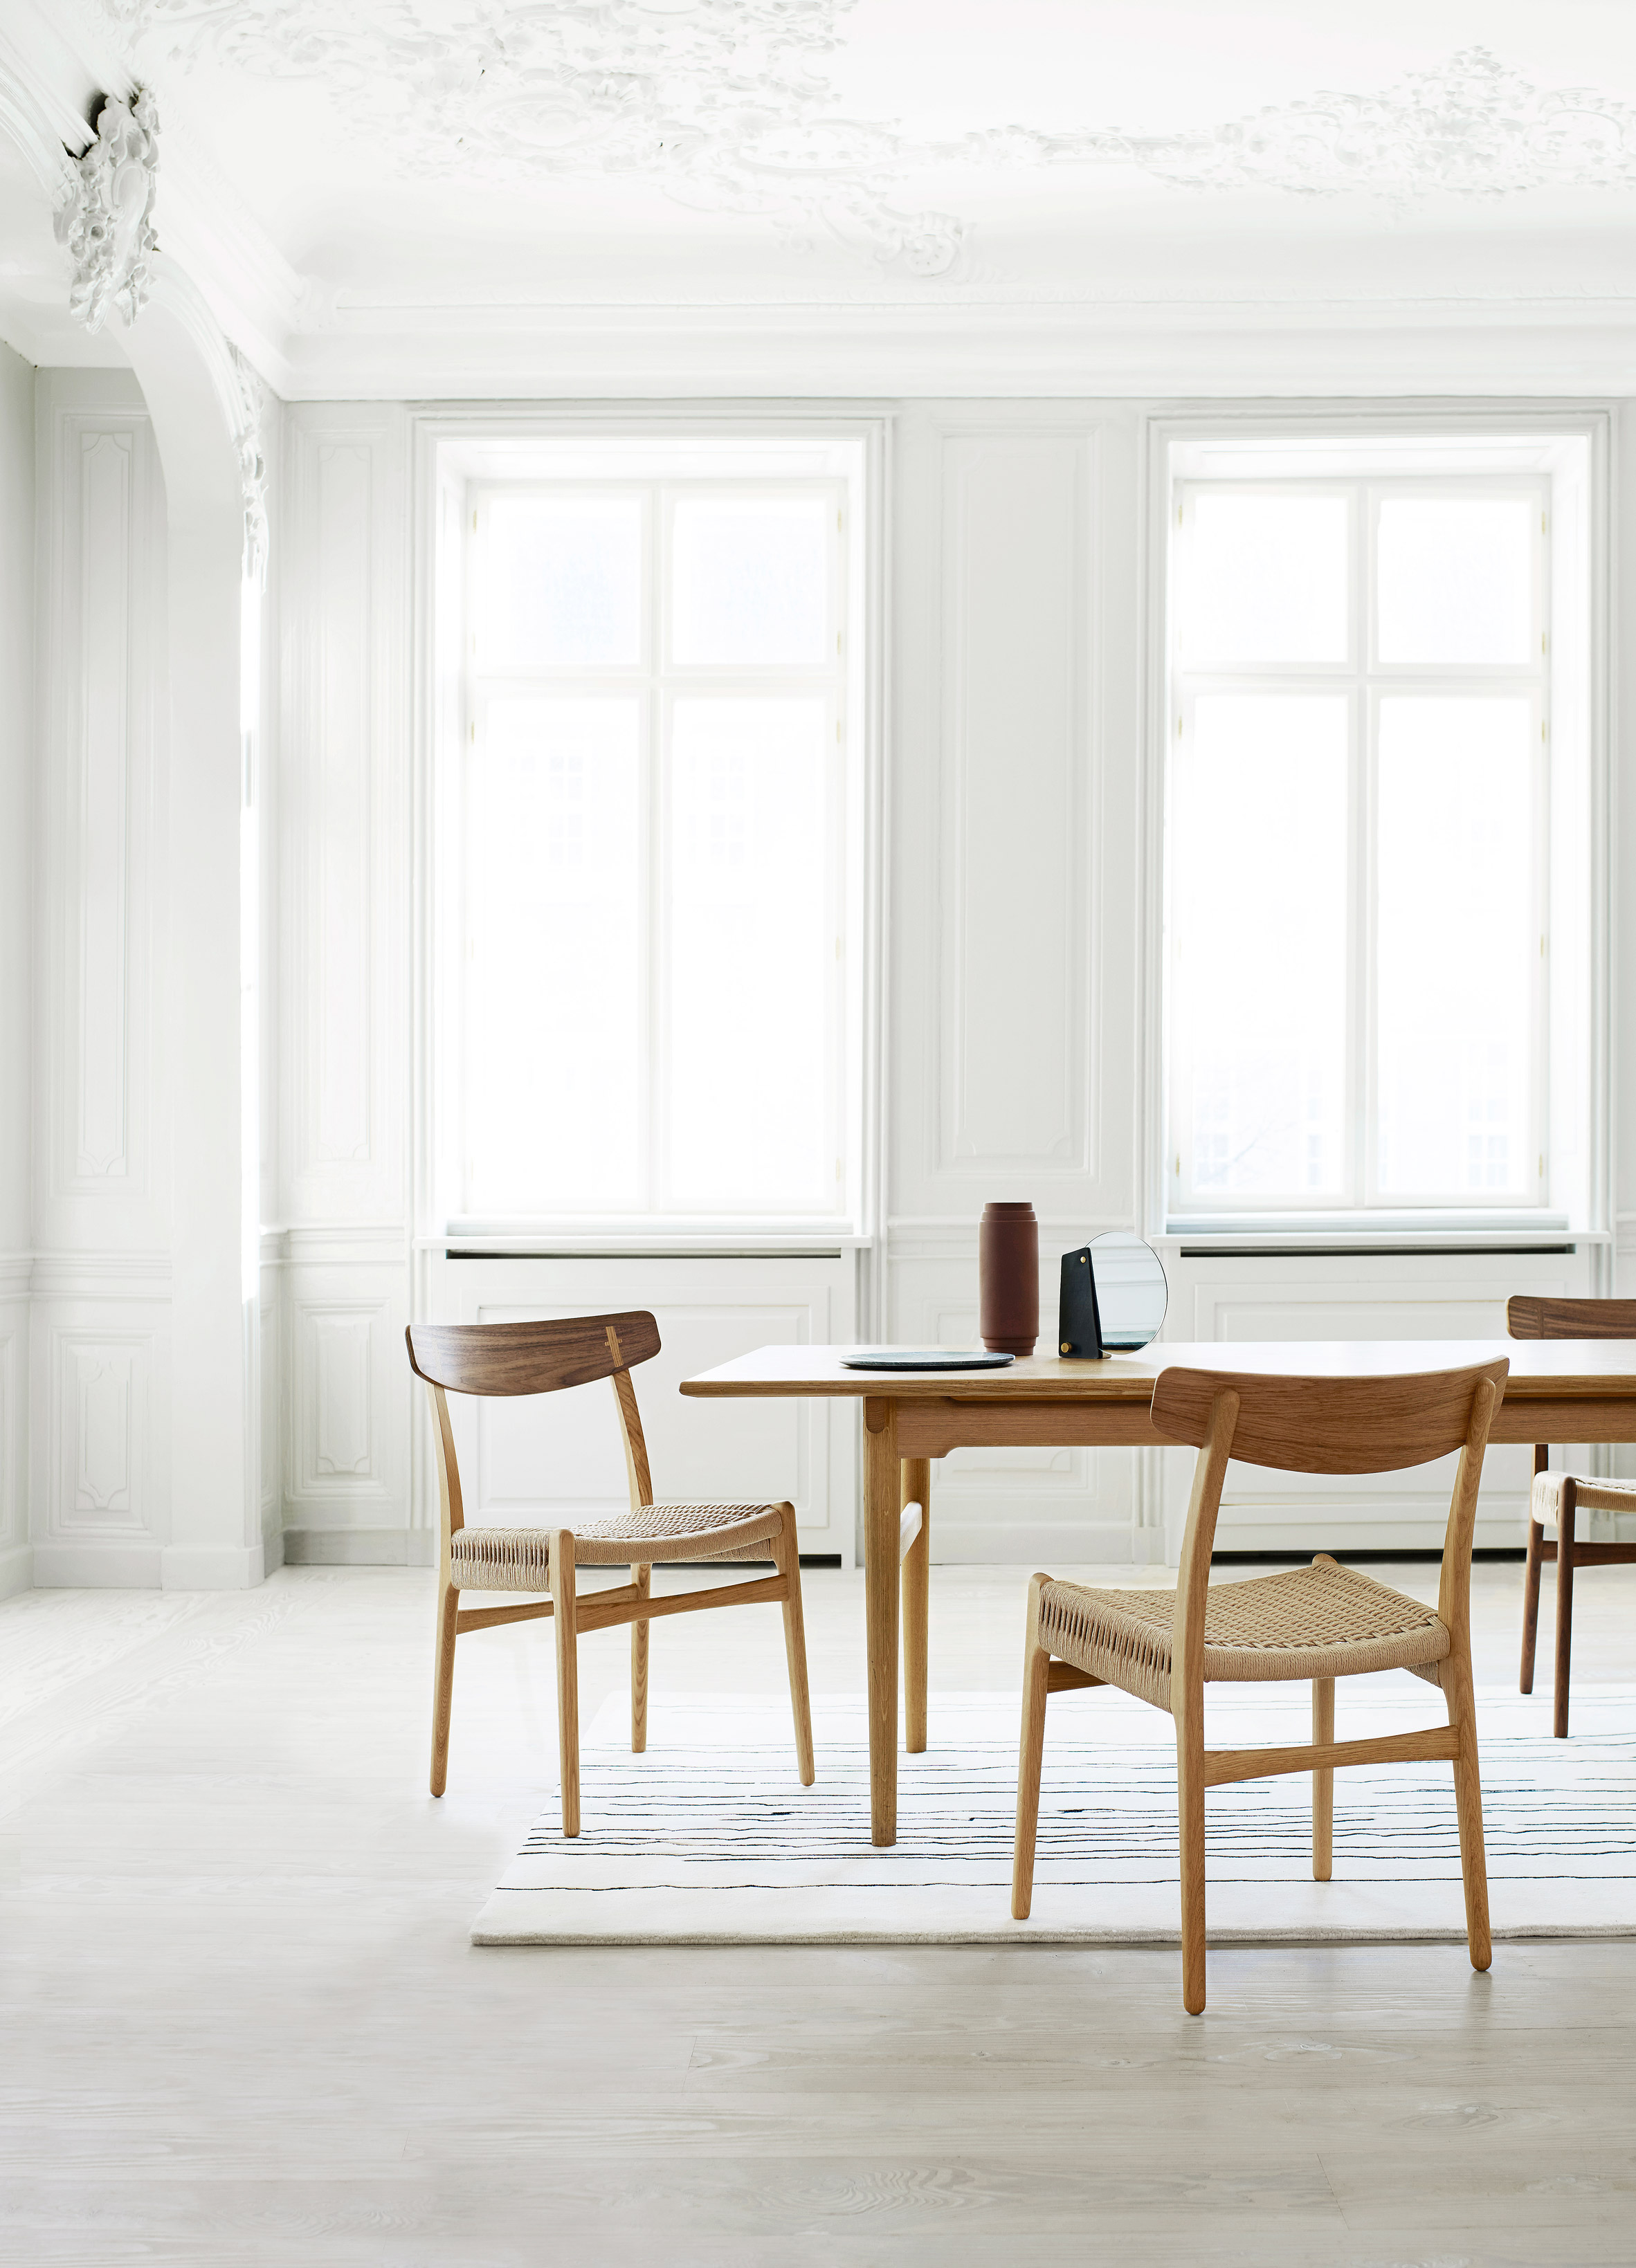 Carl Hansen & Son Re-Releases Final Chair from Hans J Wegner Collection hans j wegner collection Carl Hansen & Son Releases Final Chair from Hans J Wegner Collection Carl Hansen Son Re Releases Final Chair from Hans J Wegner Collection 3